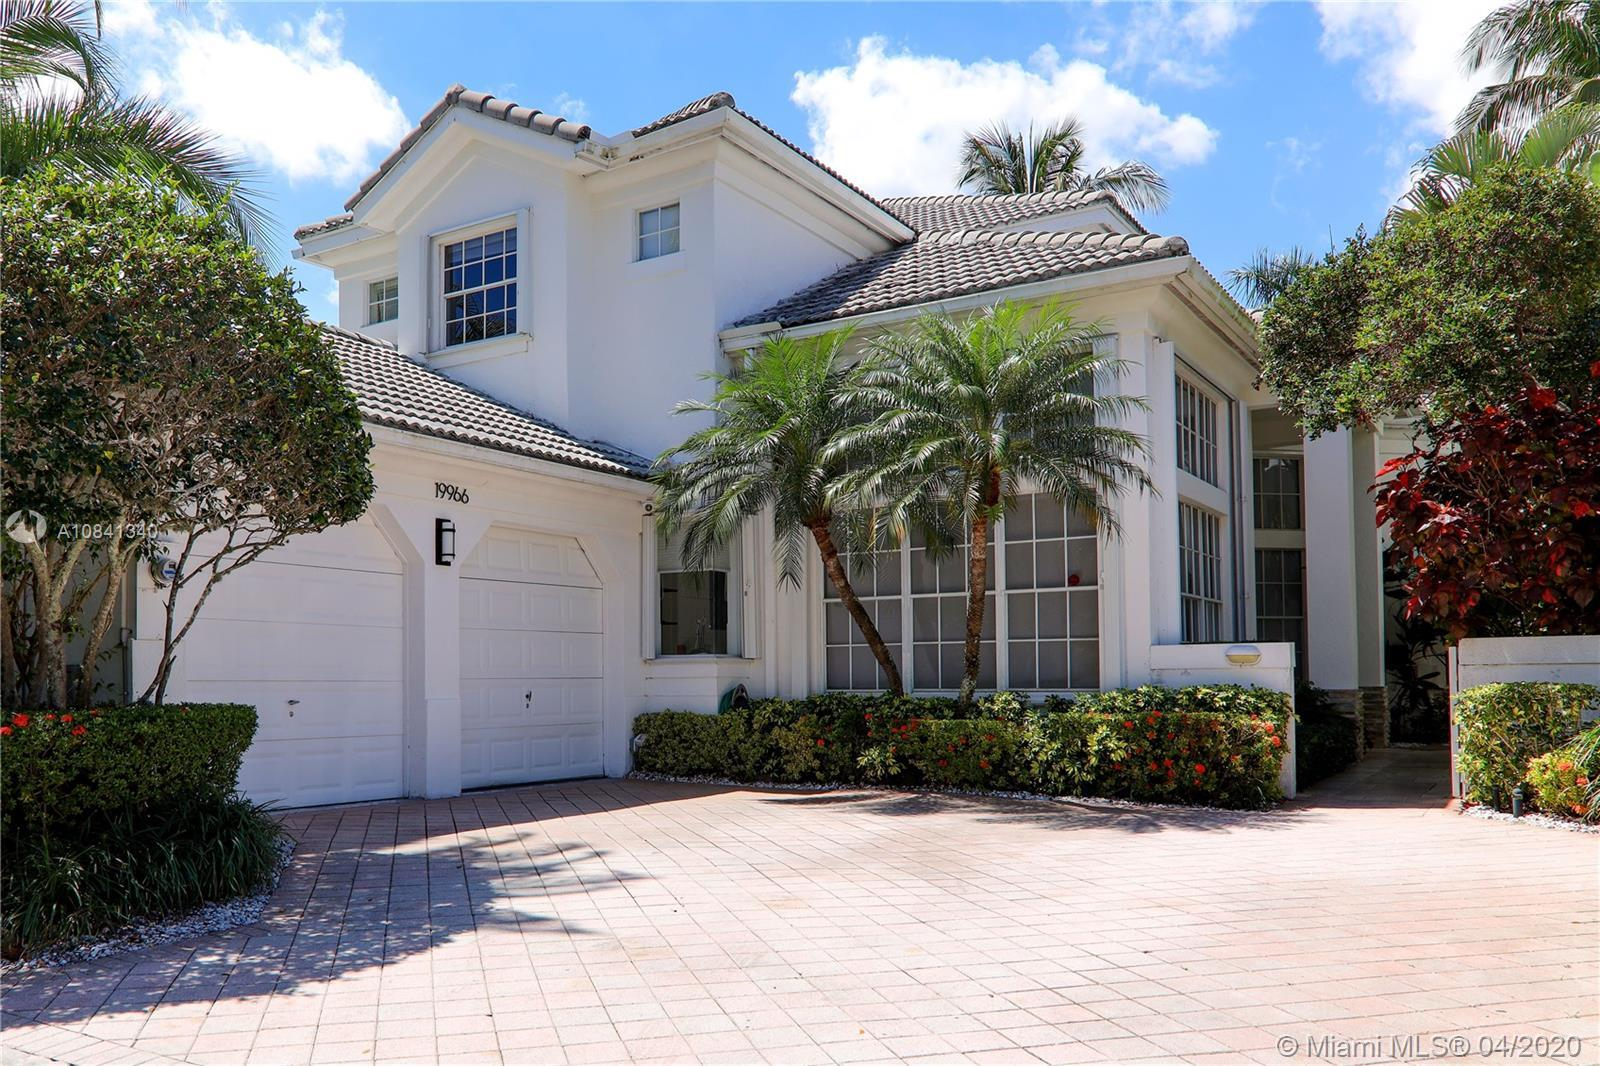 Beutifull house in a prestigious community Country Club Estates with golf view course. Updated with